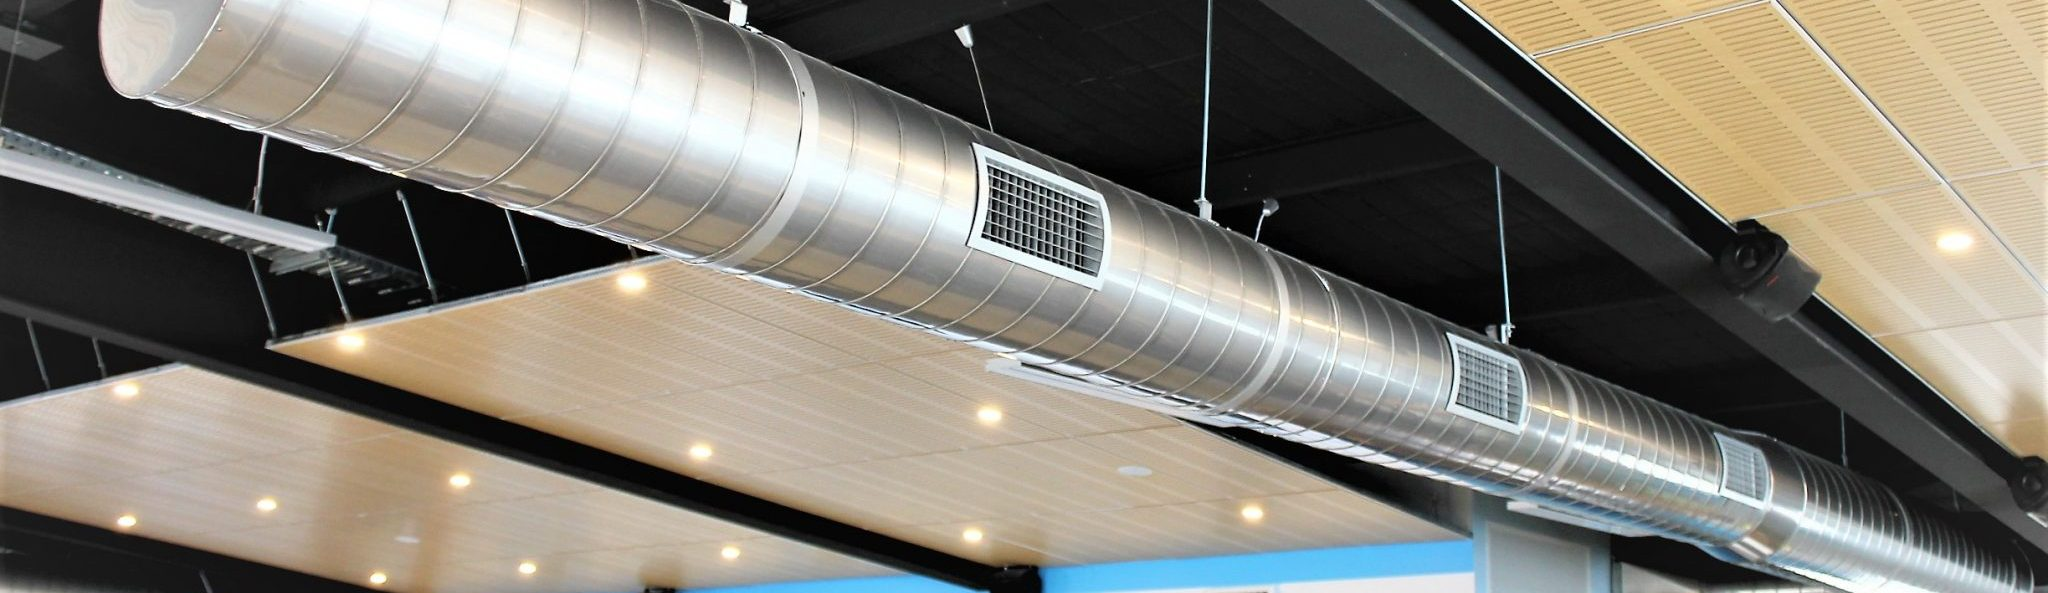 spiral-duct-installed-2-e1531156040299